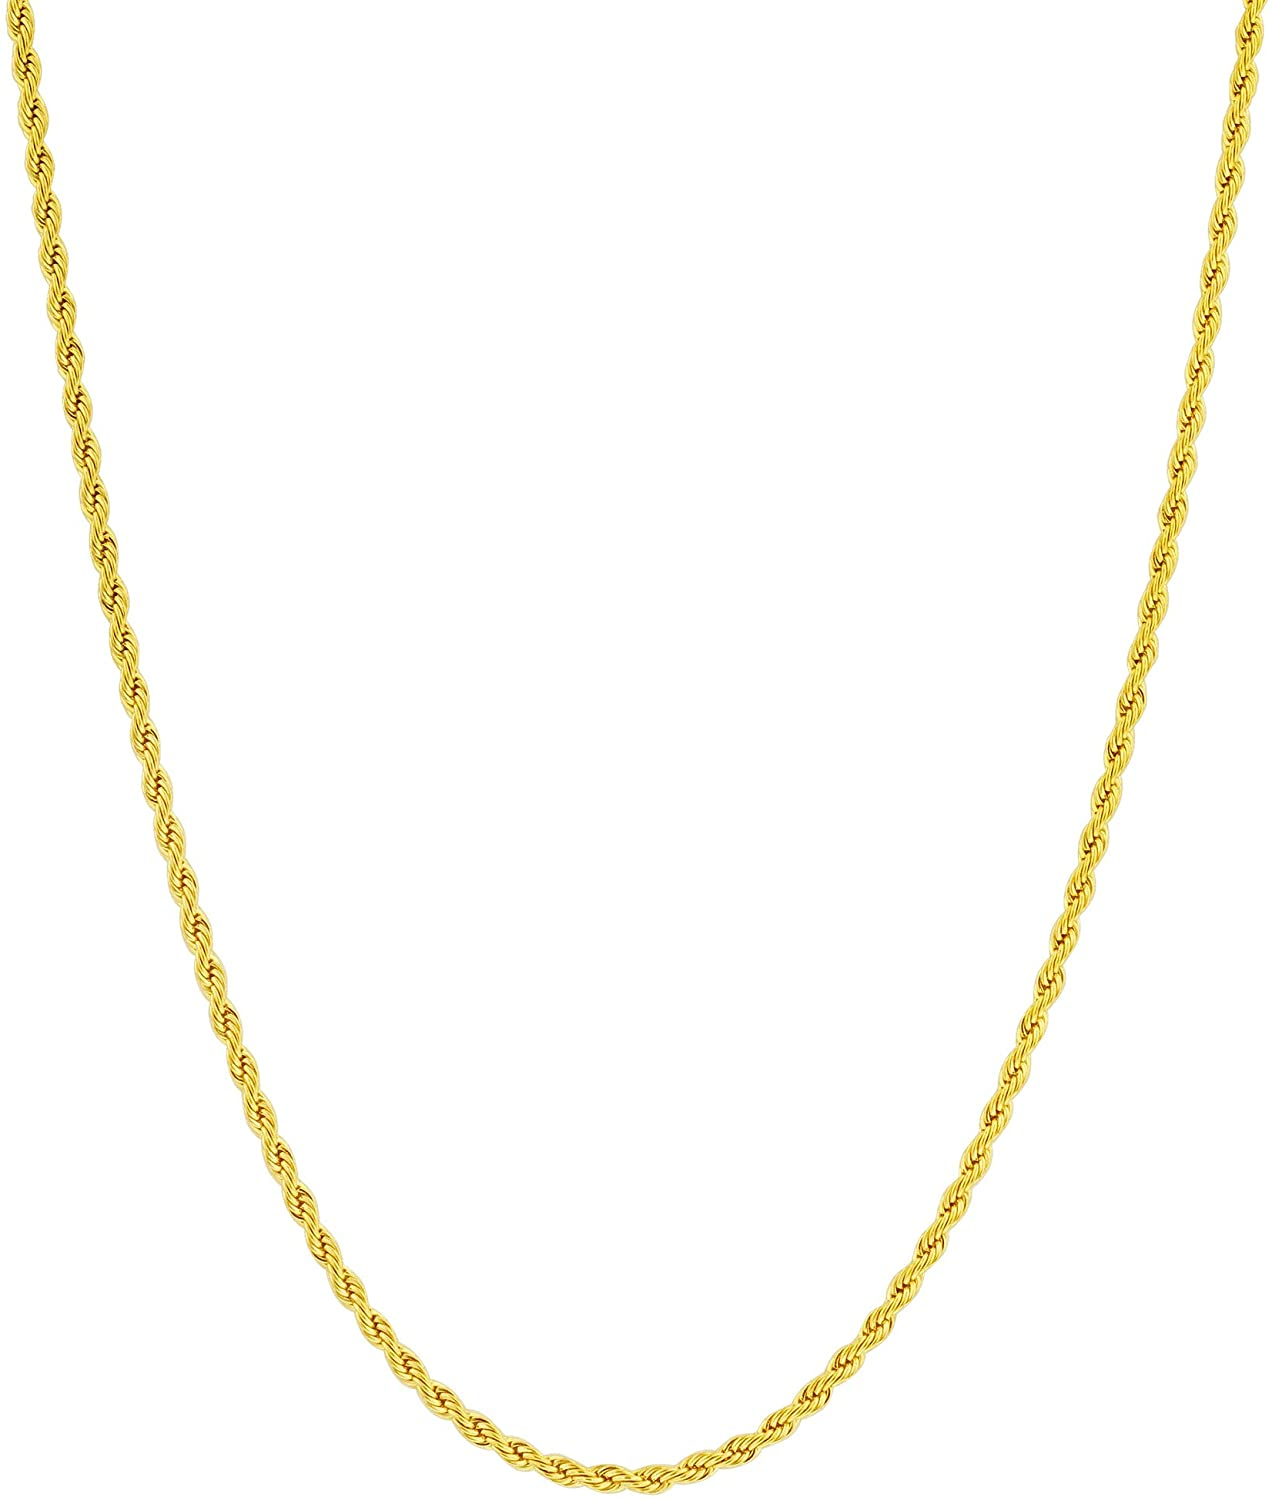 Gem Avenue Stainless Steel Gold Plated 2mm Diamond-Cut Rope Chain Necklace